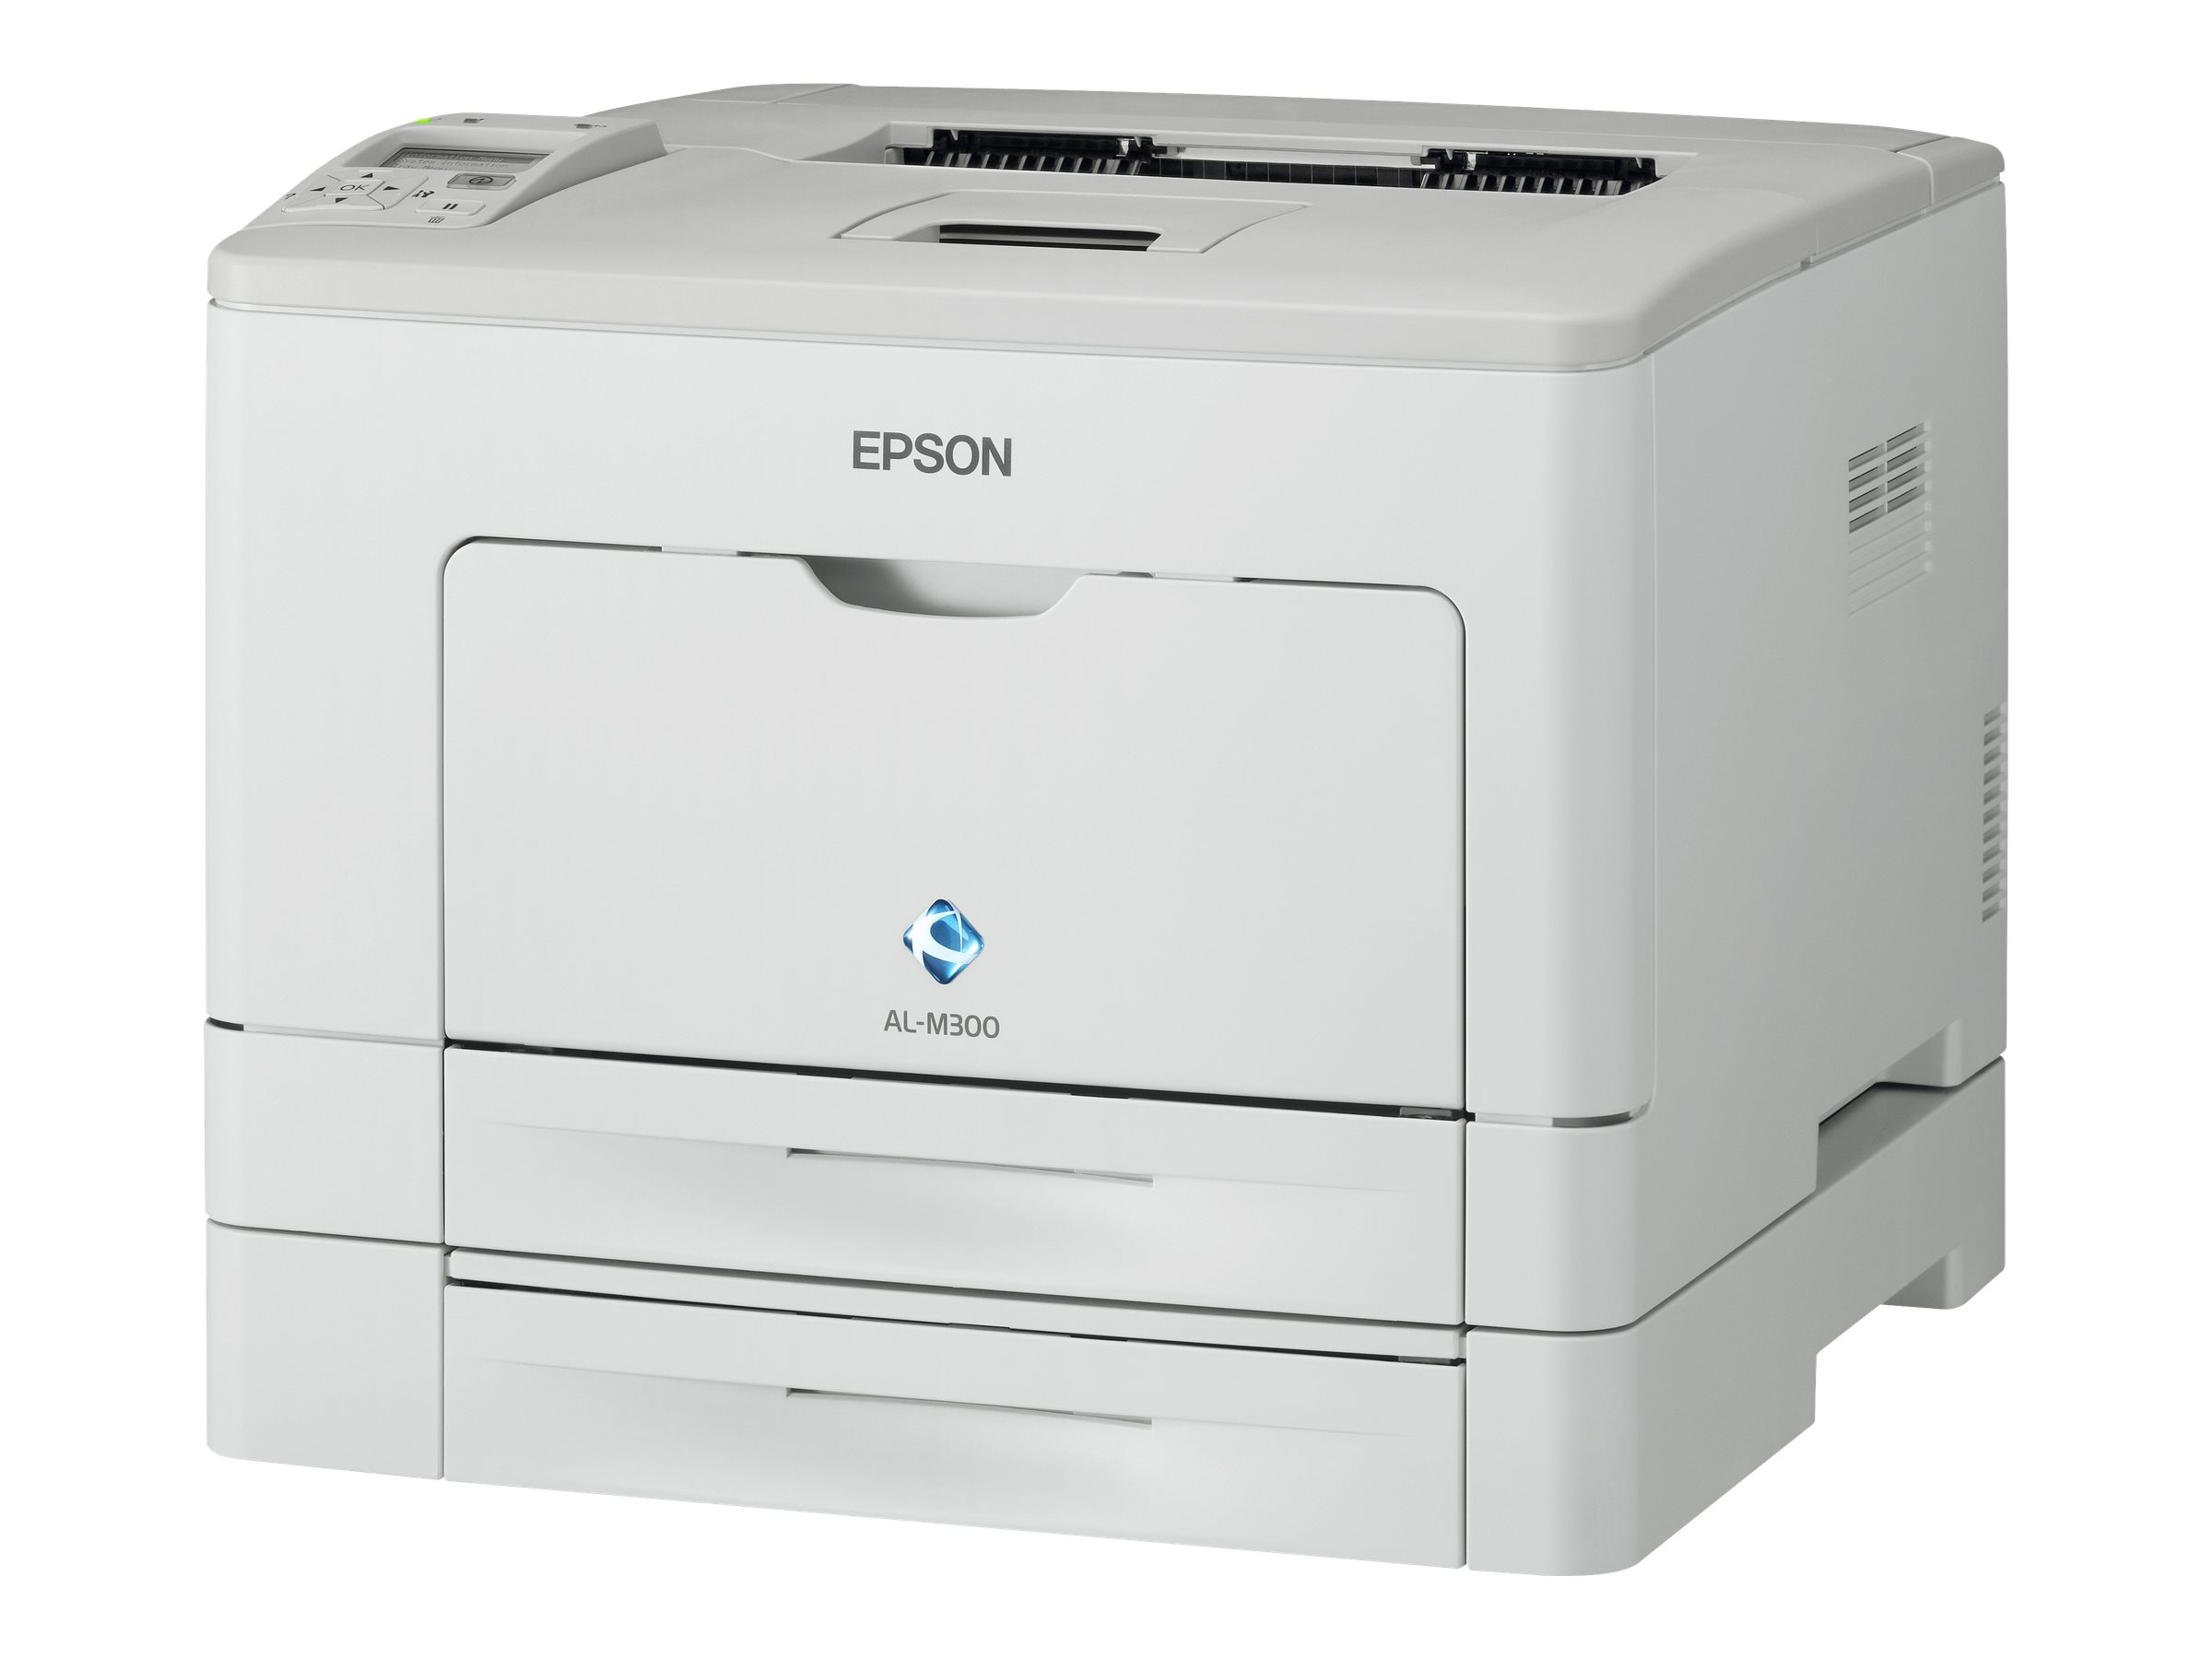 epson workforce al m300dt imprimante monochrome laser imprimantes laser neuves. Black Bedroom Furniture Sets. Home Design Ideas